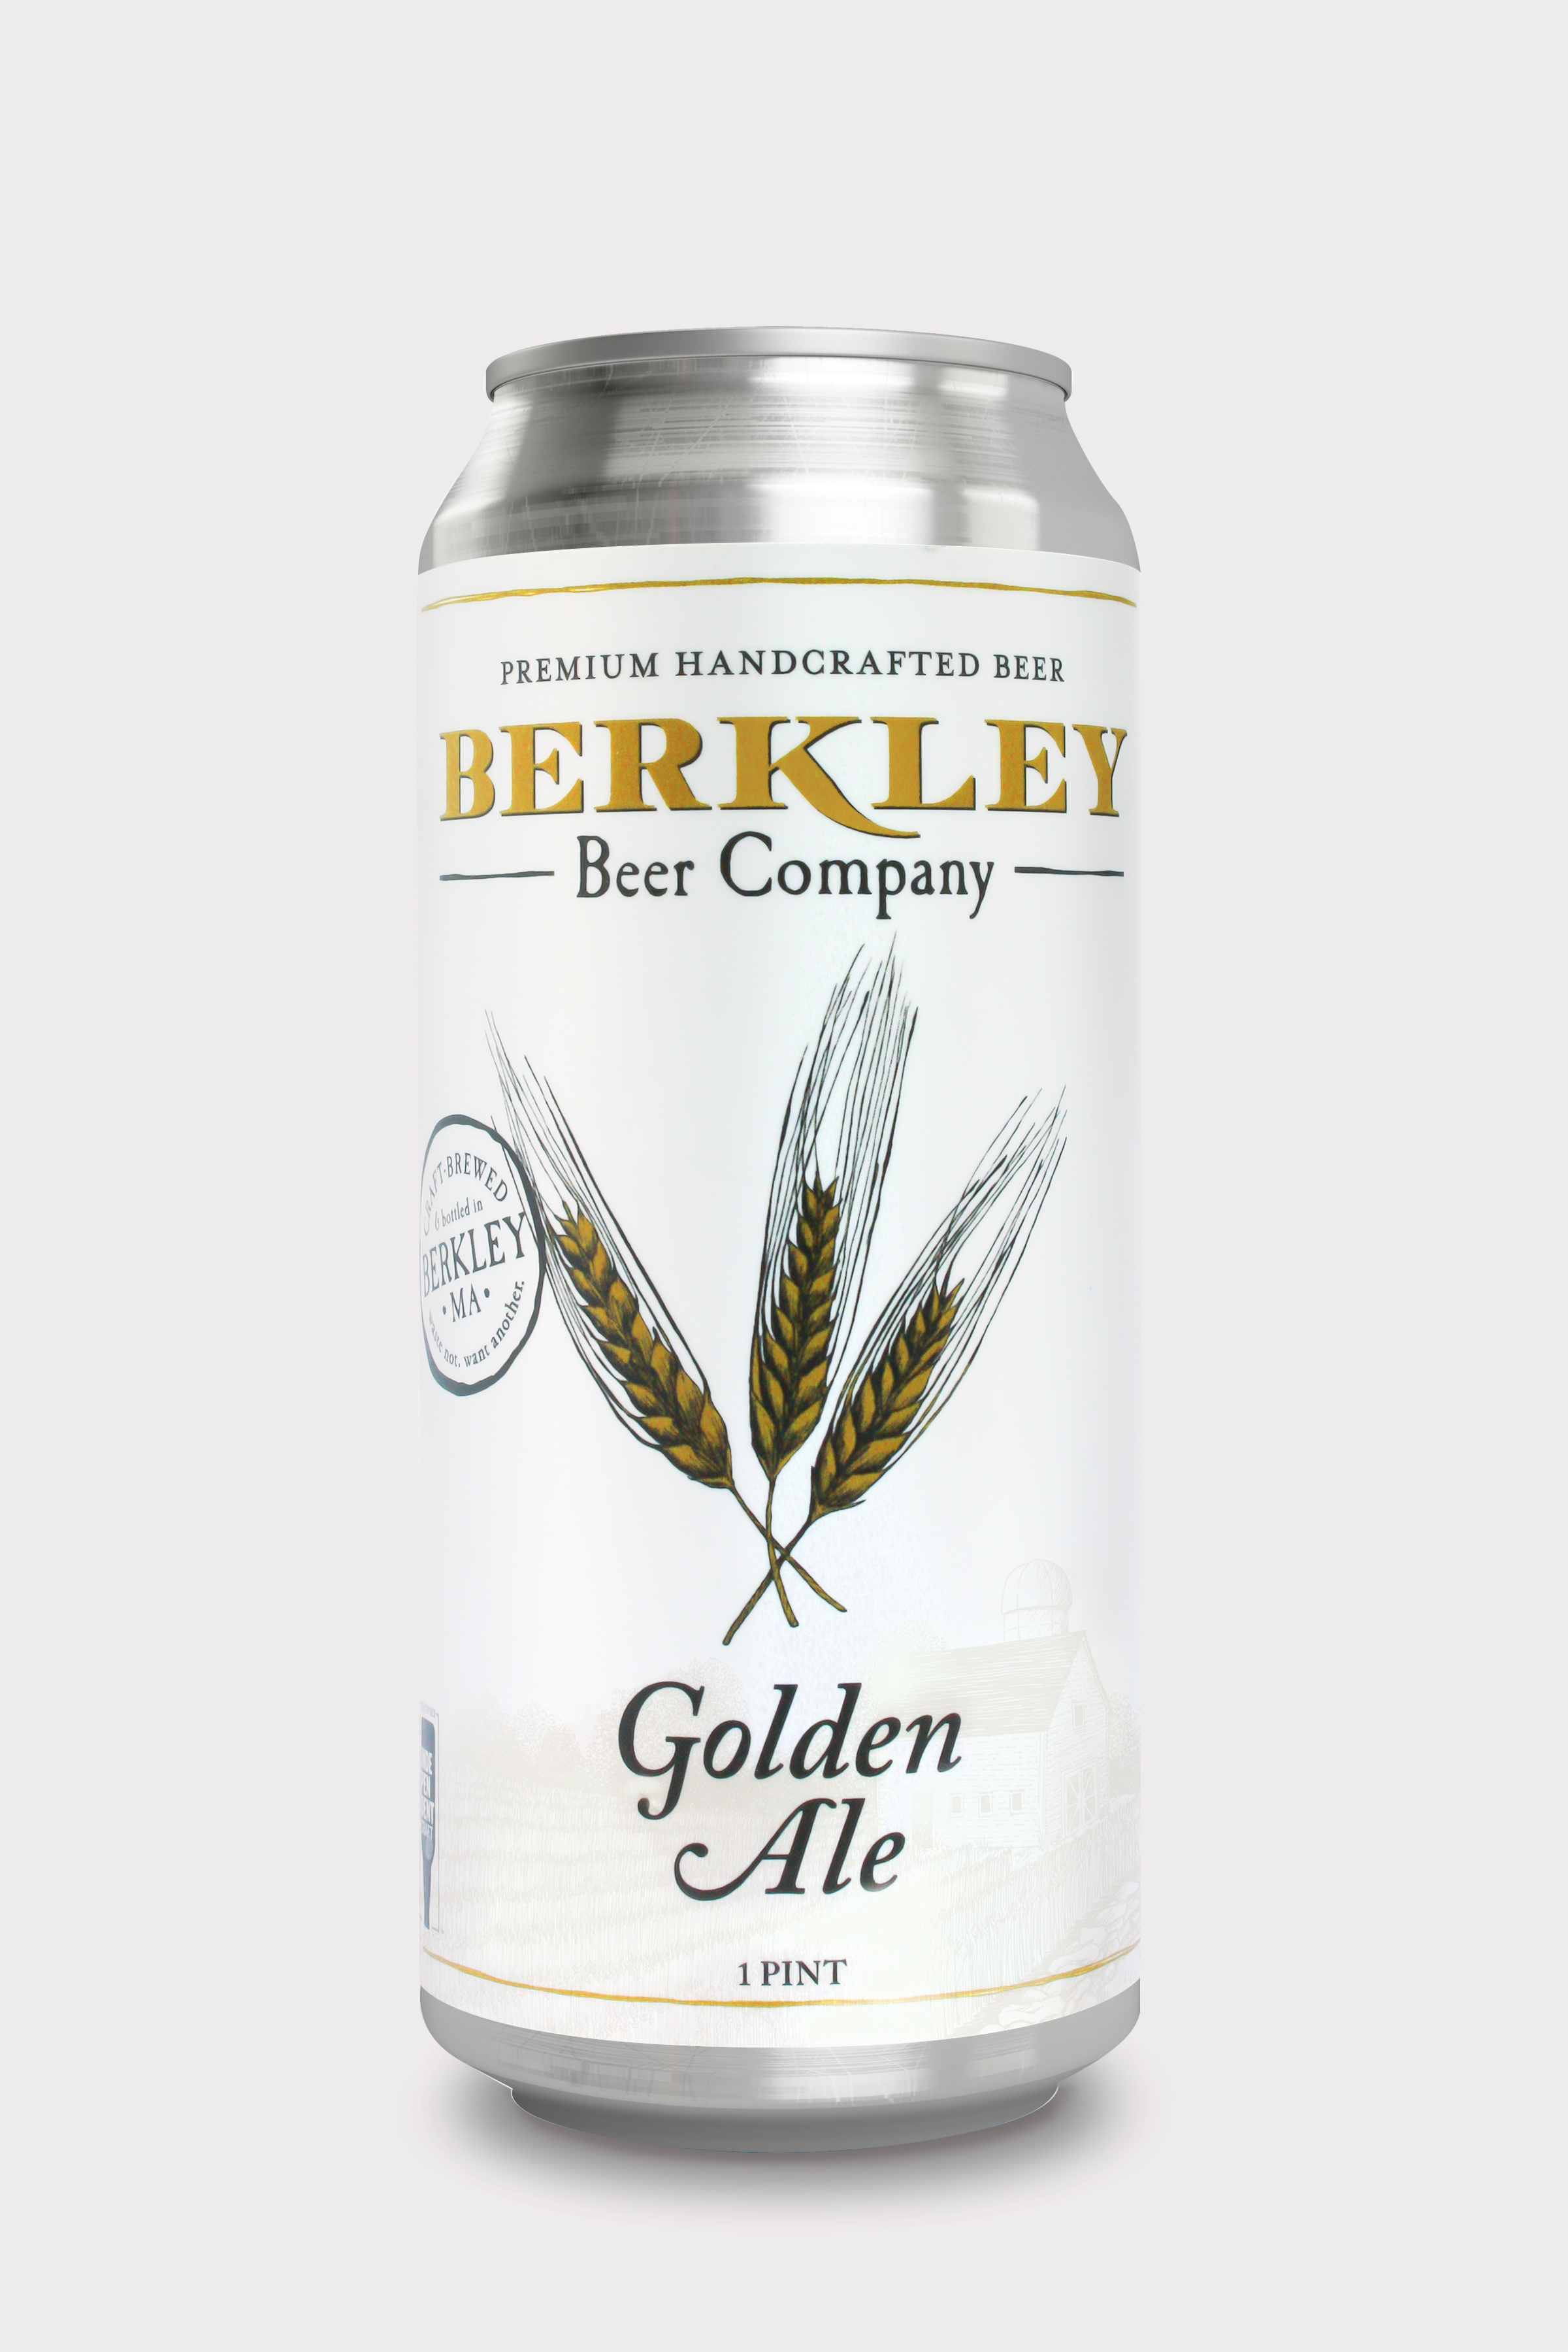 Golden Ale 5%  A Well-balanced wheat ale featuring a smooth, crisp taste paired with a slight malty finish to make it gloriously golden and pleasantly refreshing